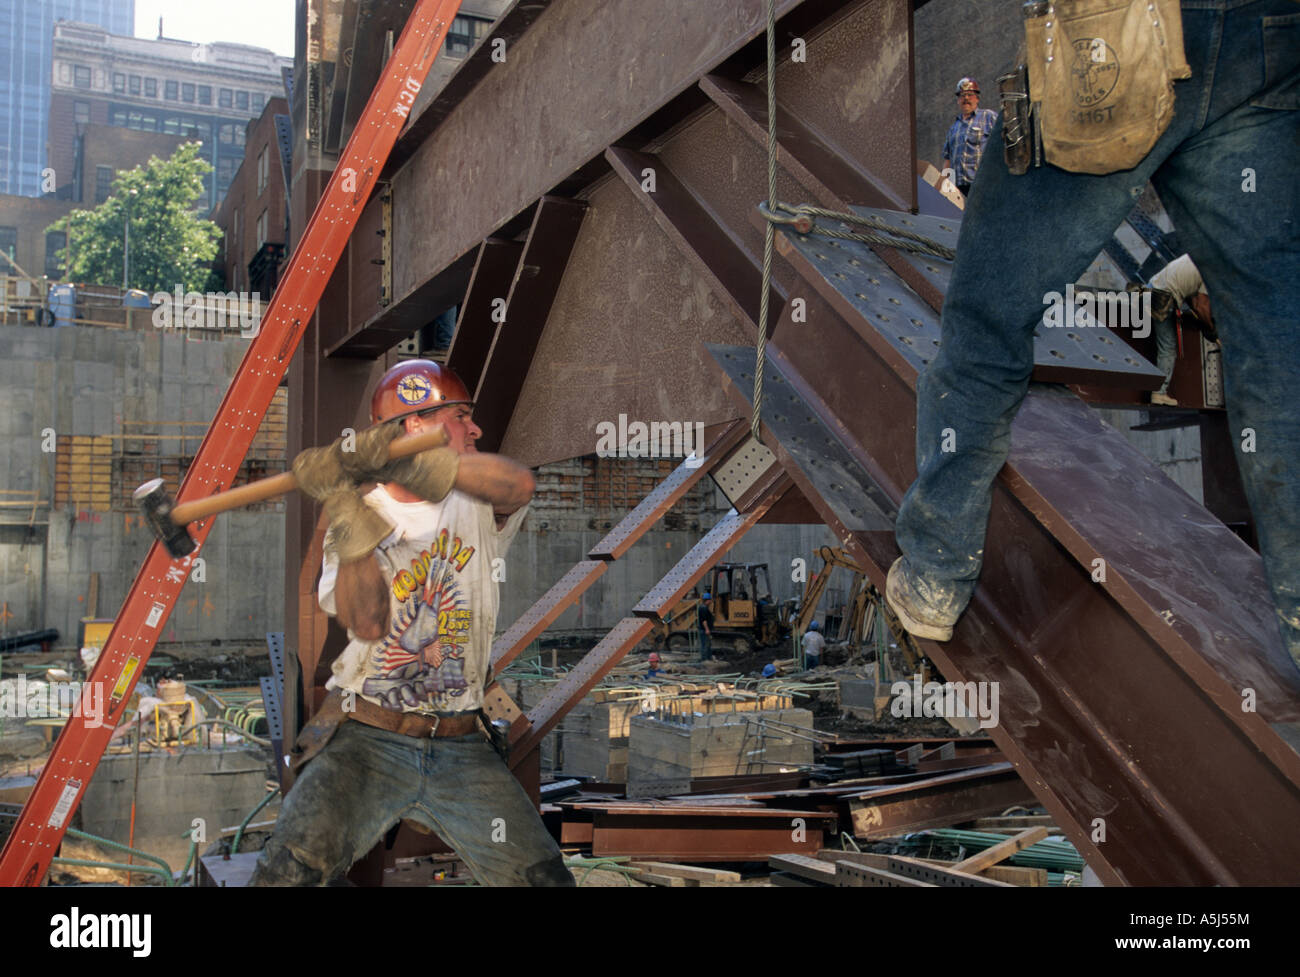 Iron worker use sledge hammer to line up bolt holes on 24,000 pound